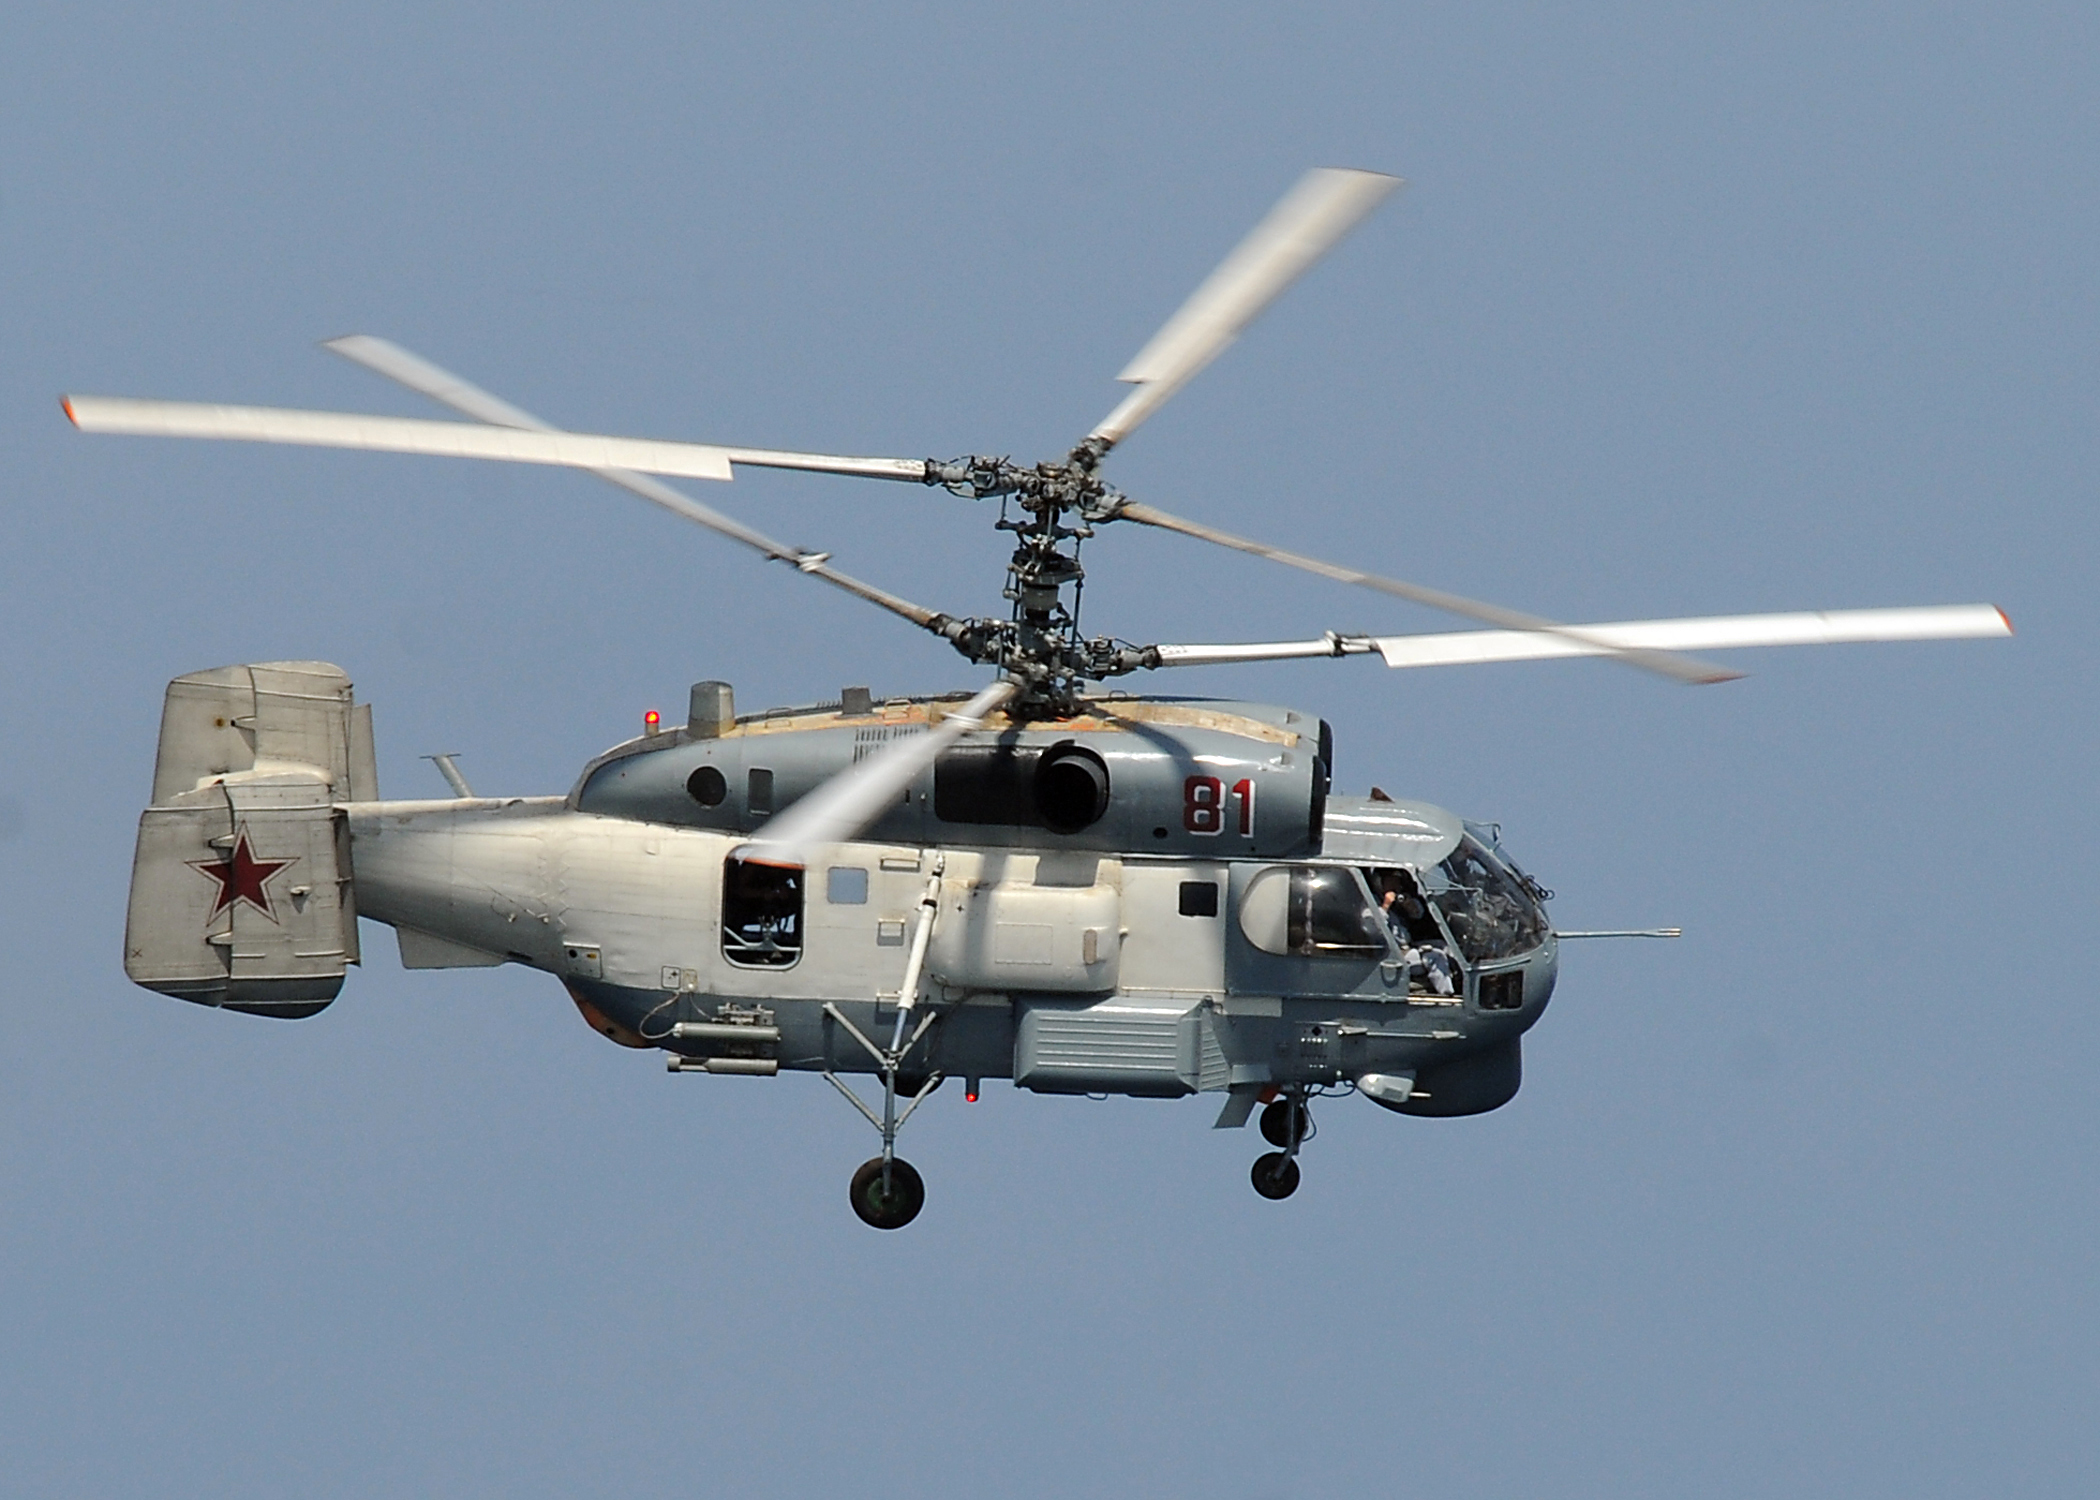 Kamov Ka-27 - Wikipedia, the free encyclopedia